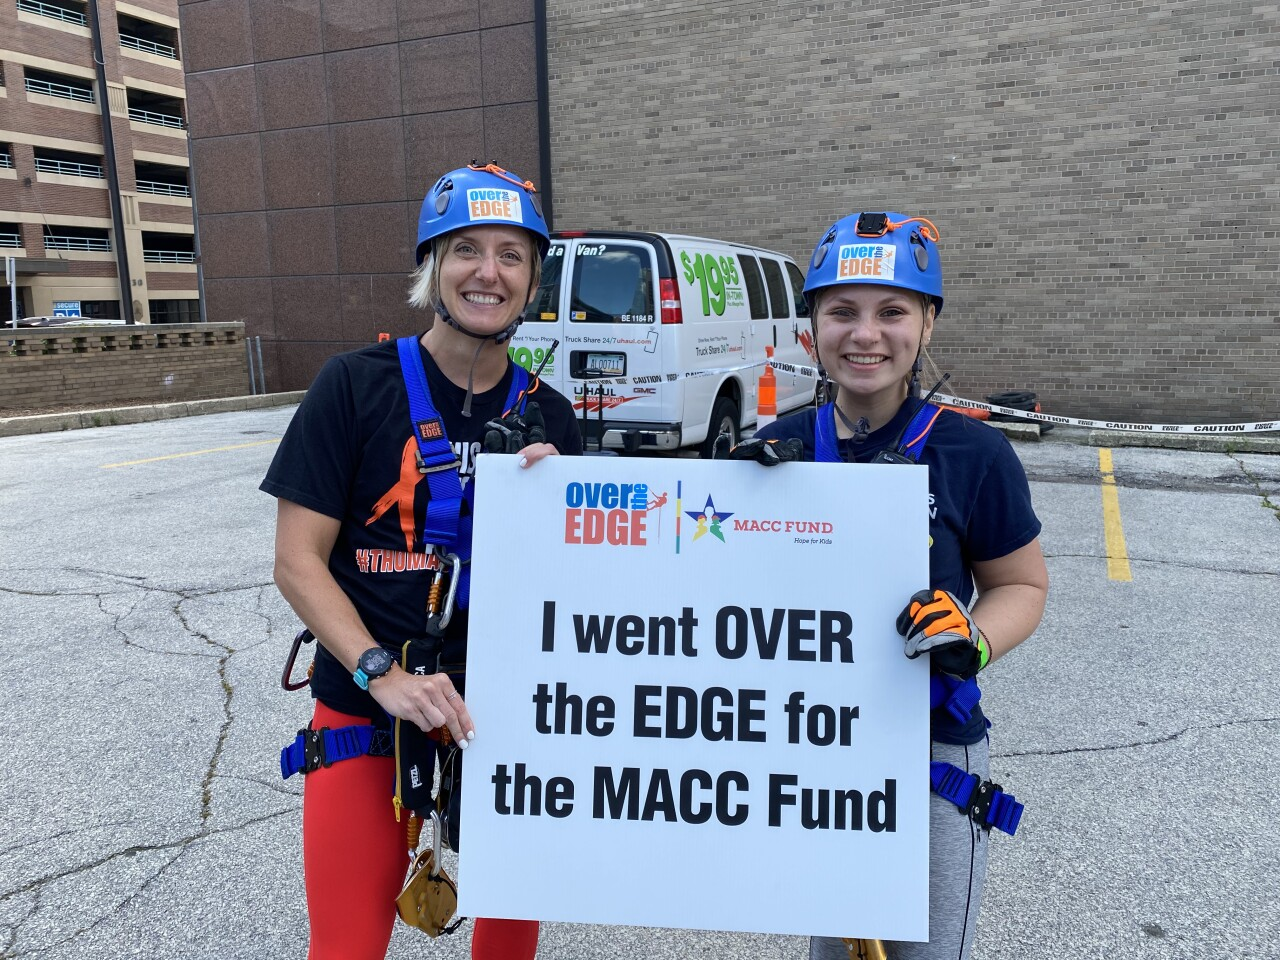 Hollyn Peterson and Kate Moody smiling after rappelling down the Wintrust Building